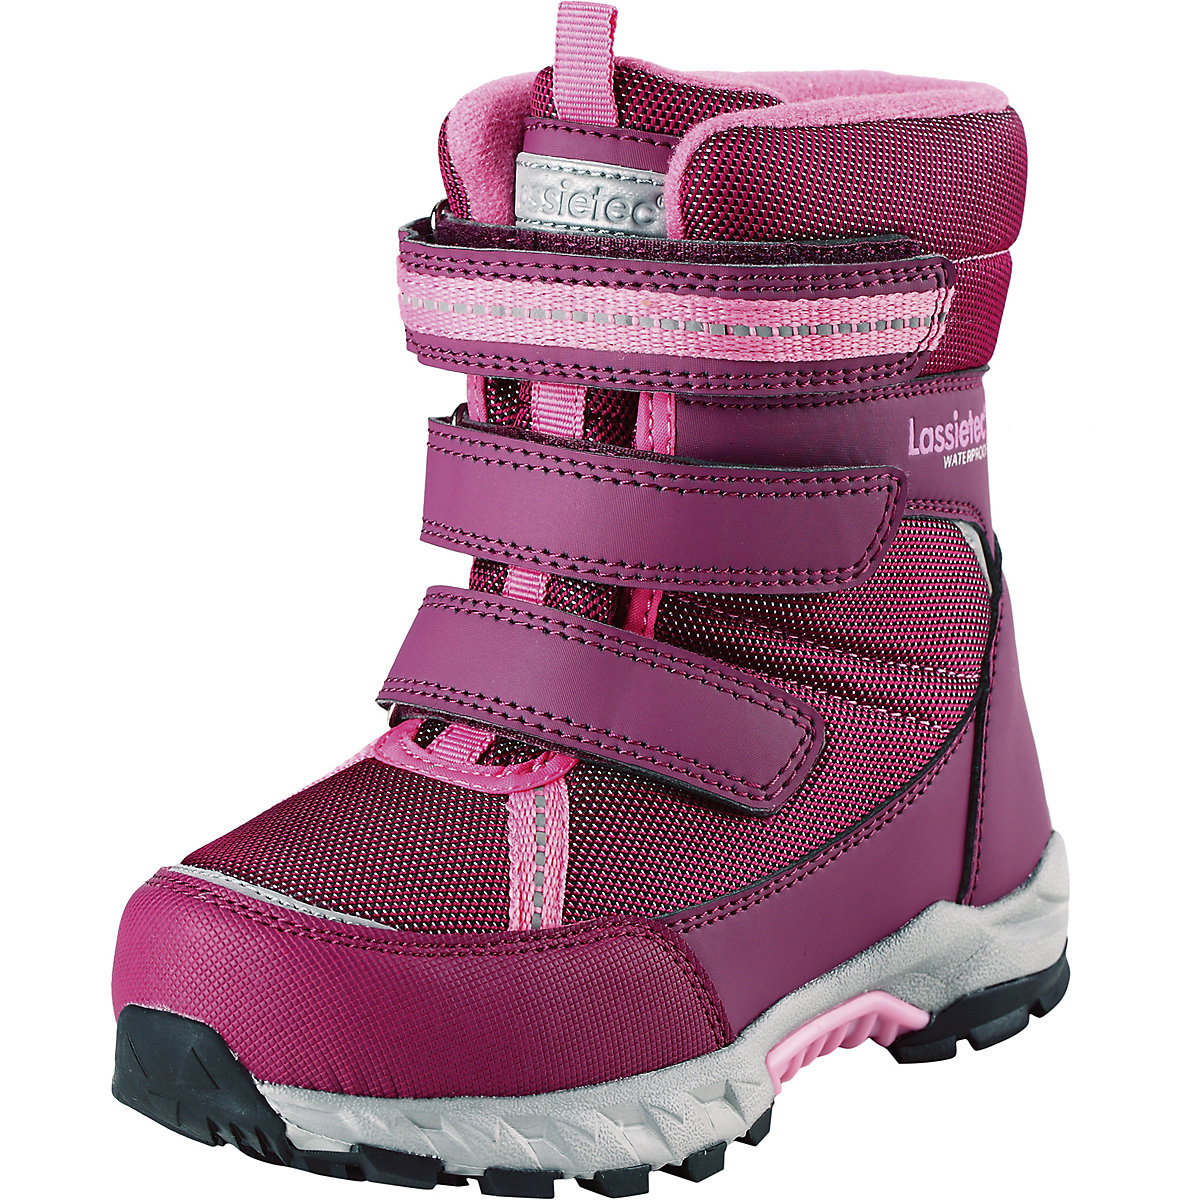 Boots LASSIE for girls 8622674 Valenki Uggi Winter Baby shoes Kids boots lassie for girls 8622674 valenki uggi winter baby shoes kids